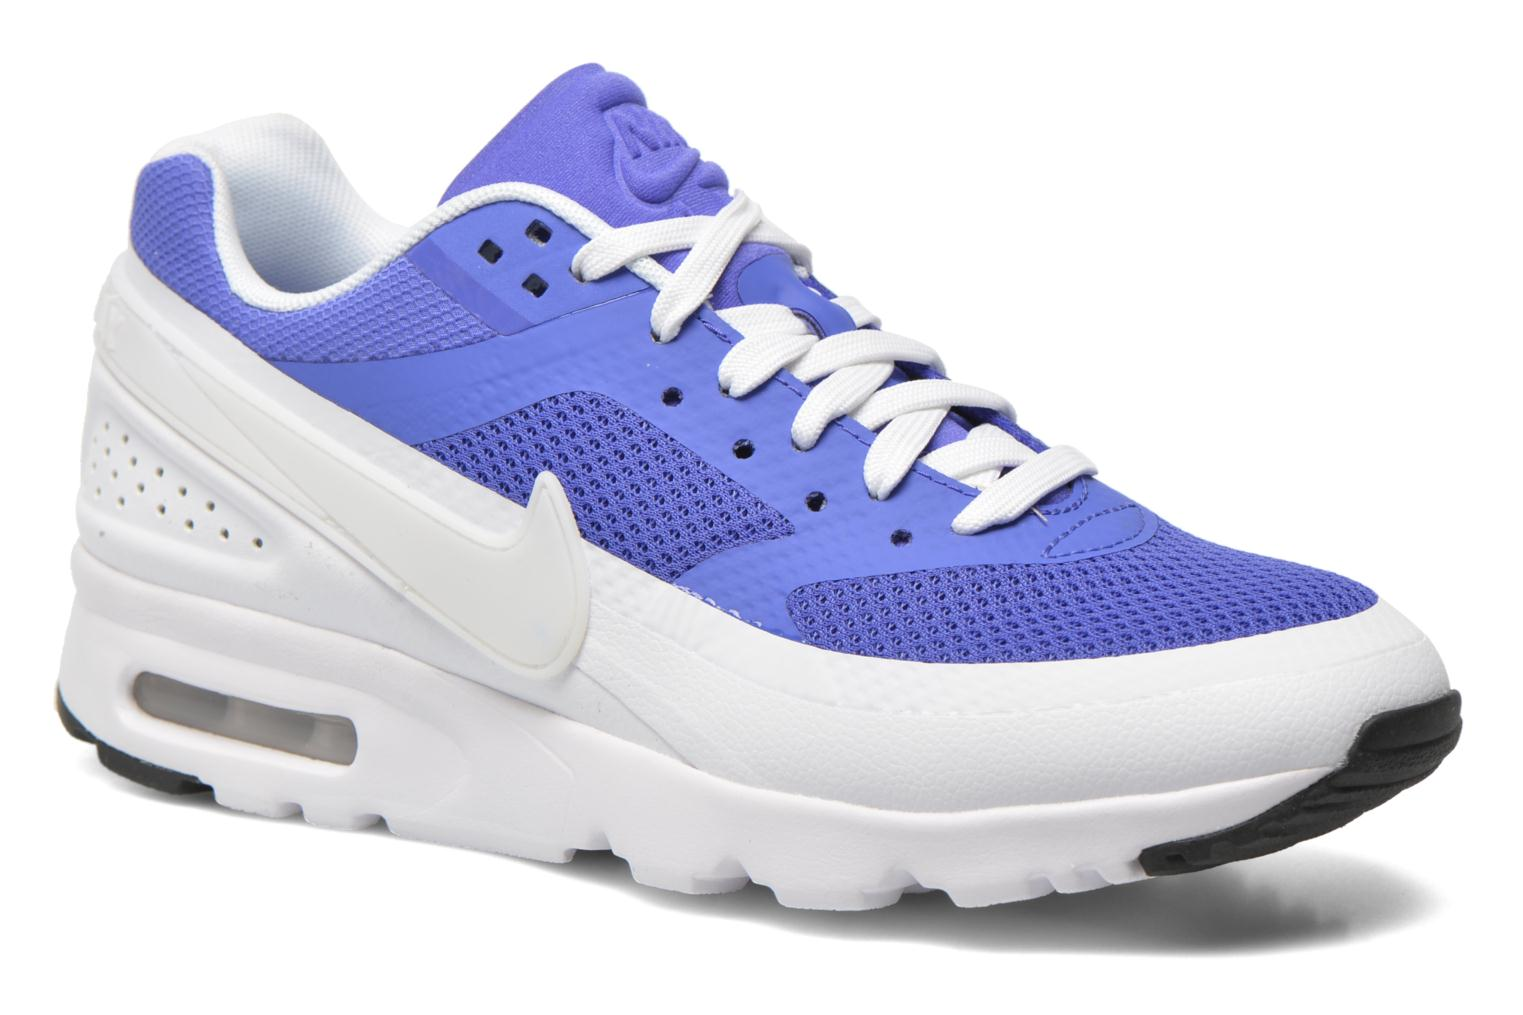 W Air Max Bw Ultra Persian Violet/White